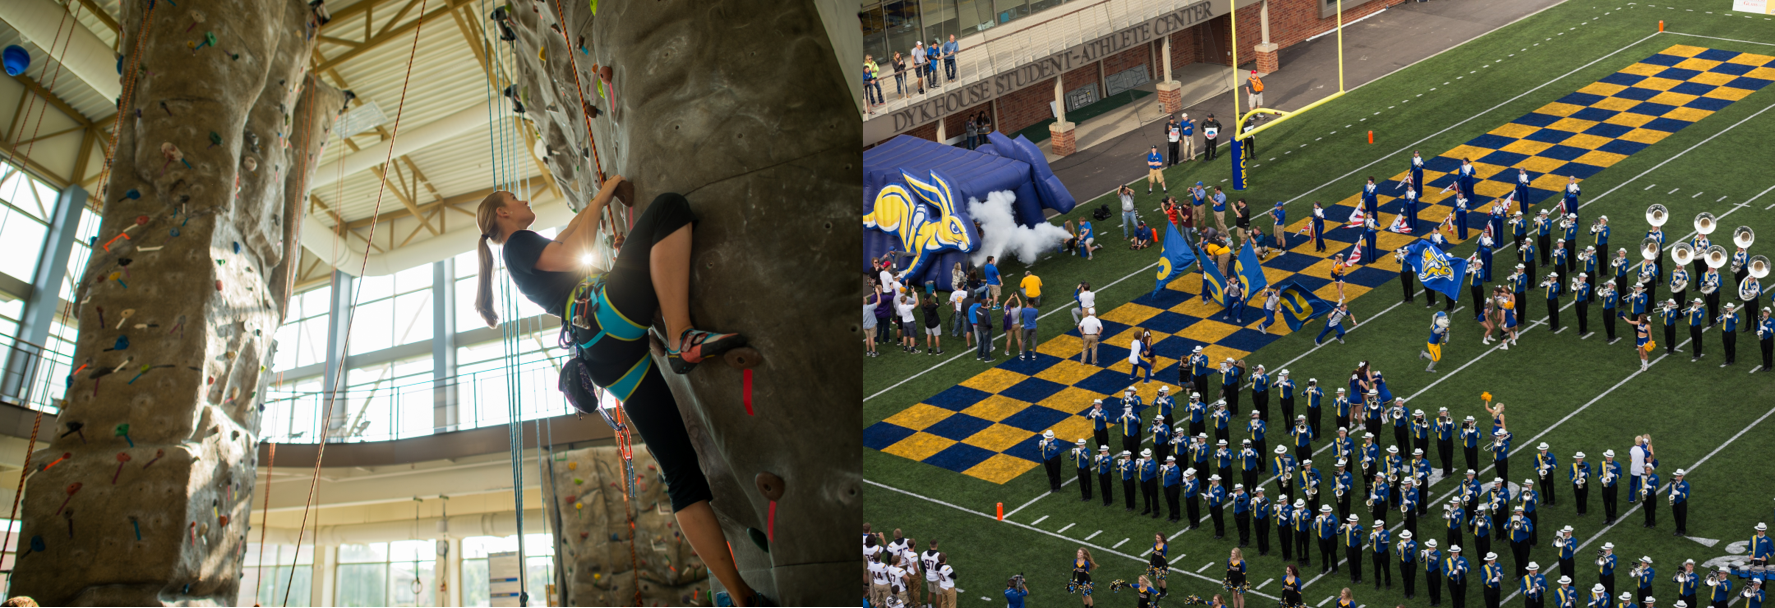 Person rock-climbing and picture of stadium with fans.